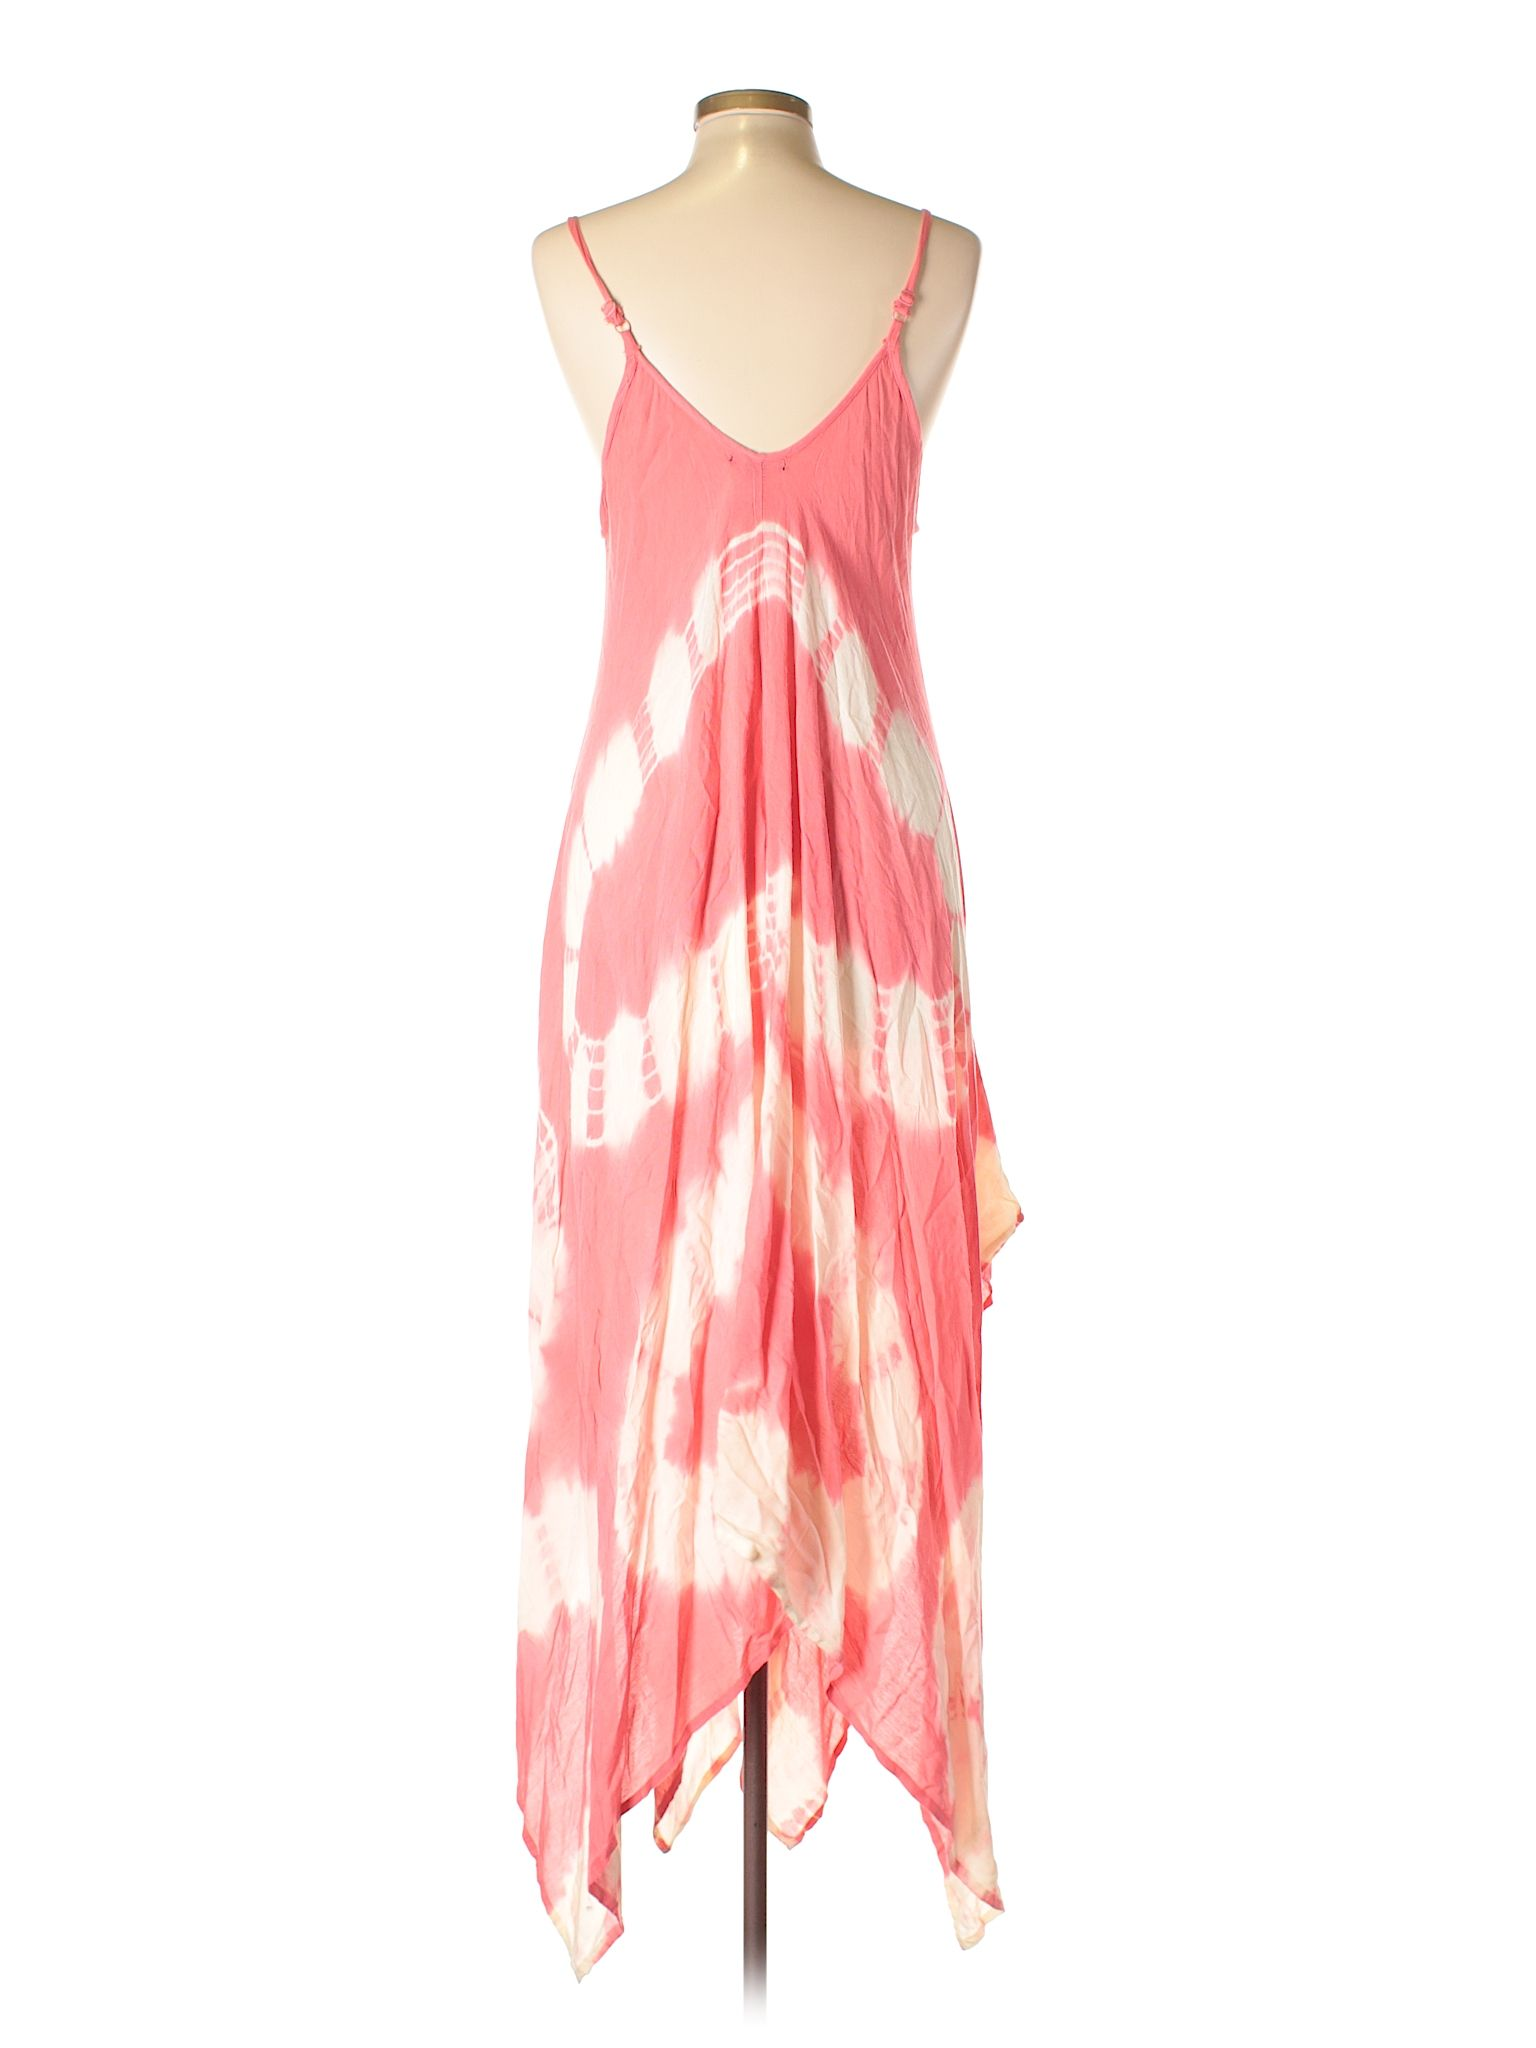 de5e9ca5fb Raviya Swimsuit Cover Up: Size 12.00 Coral Women's Swimwear - New With Tags  - $31.99